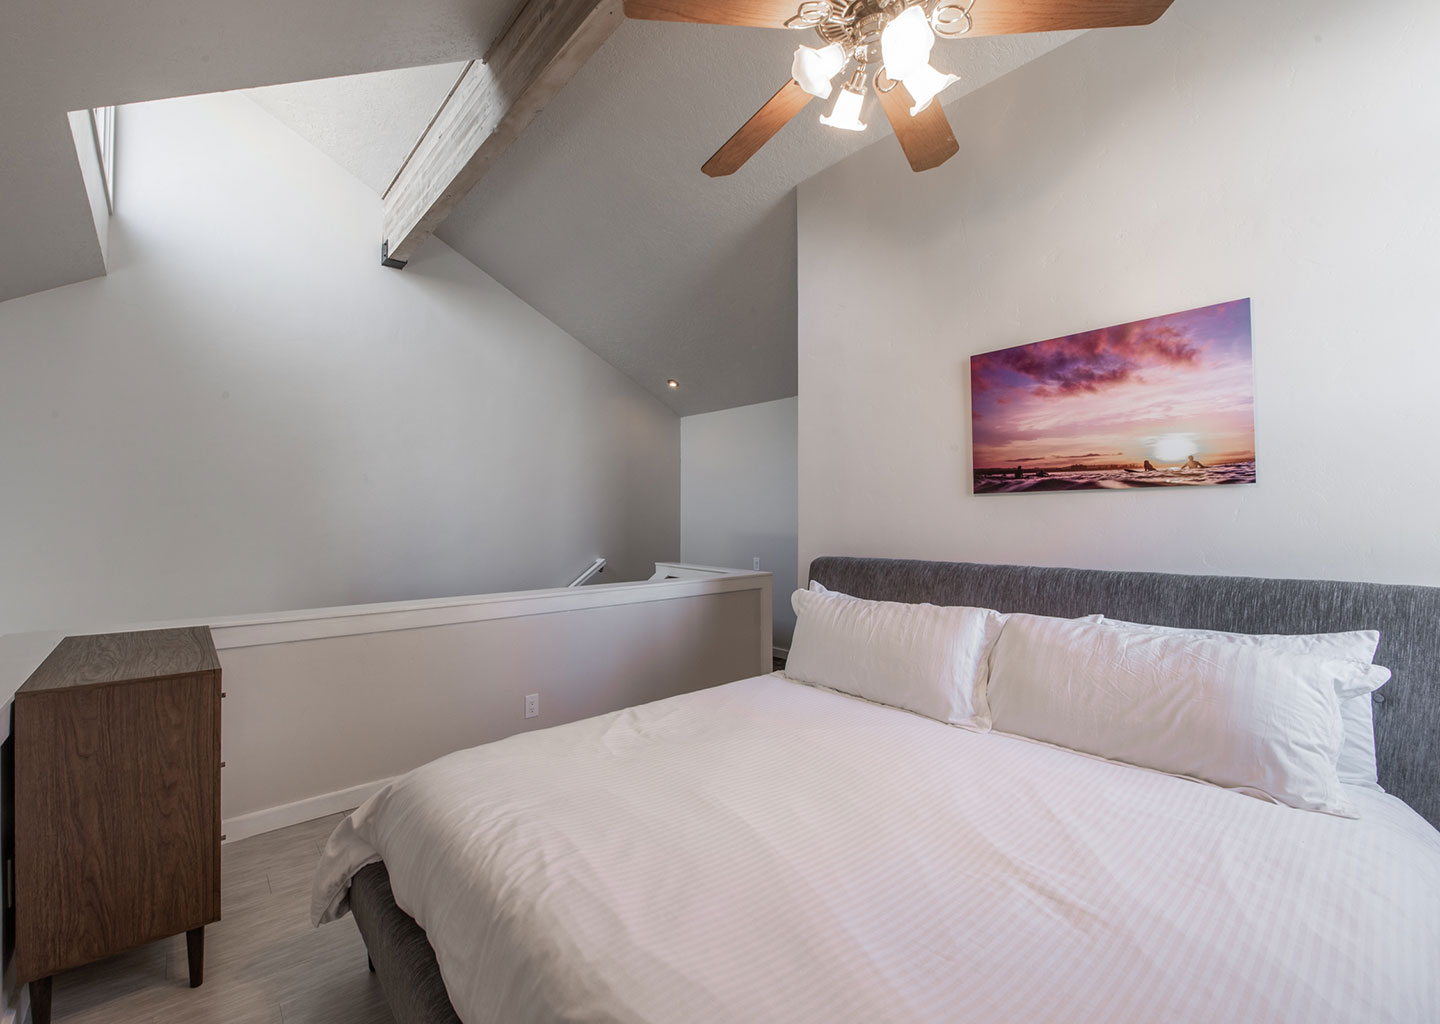 Upstairs Lofted Bedroom with Large Skylight at Three Kings Condominiums in Downtown Park City, Utah